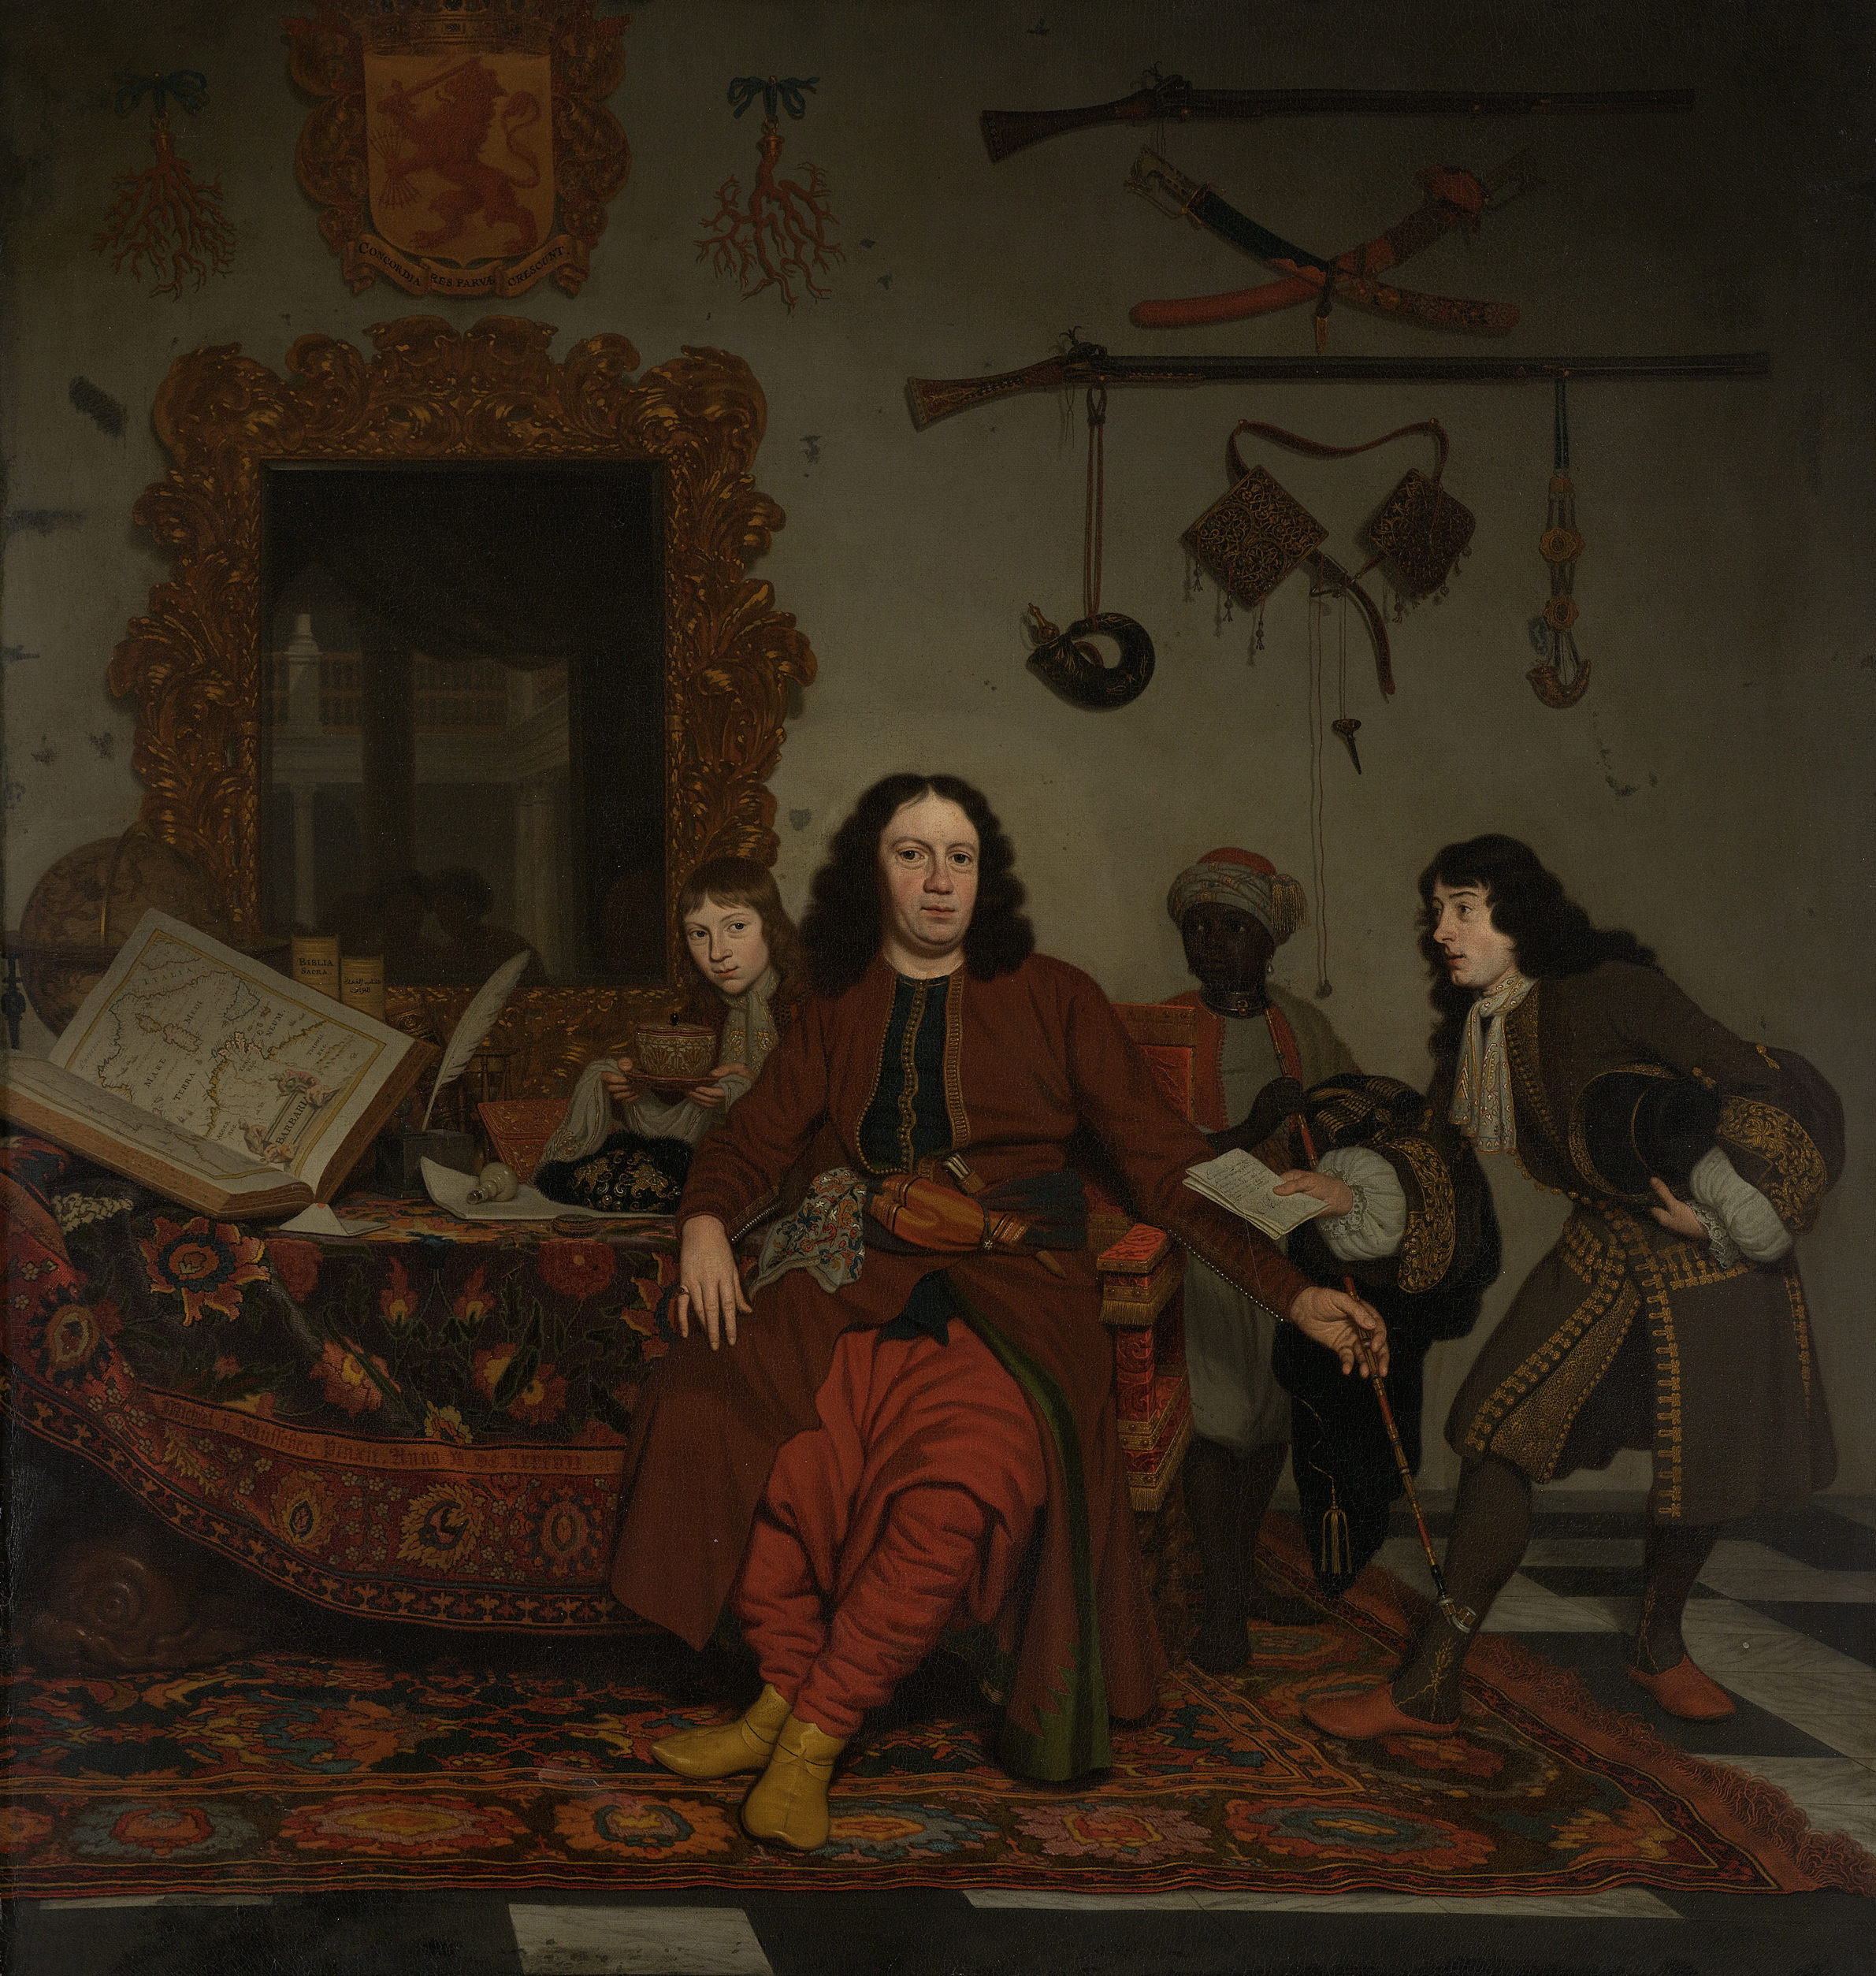 Thomas Hees, with his nephews and African slave